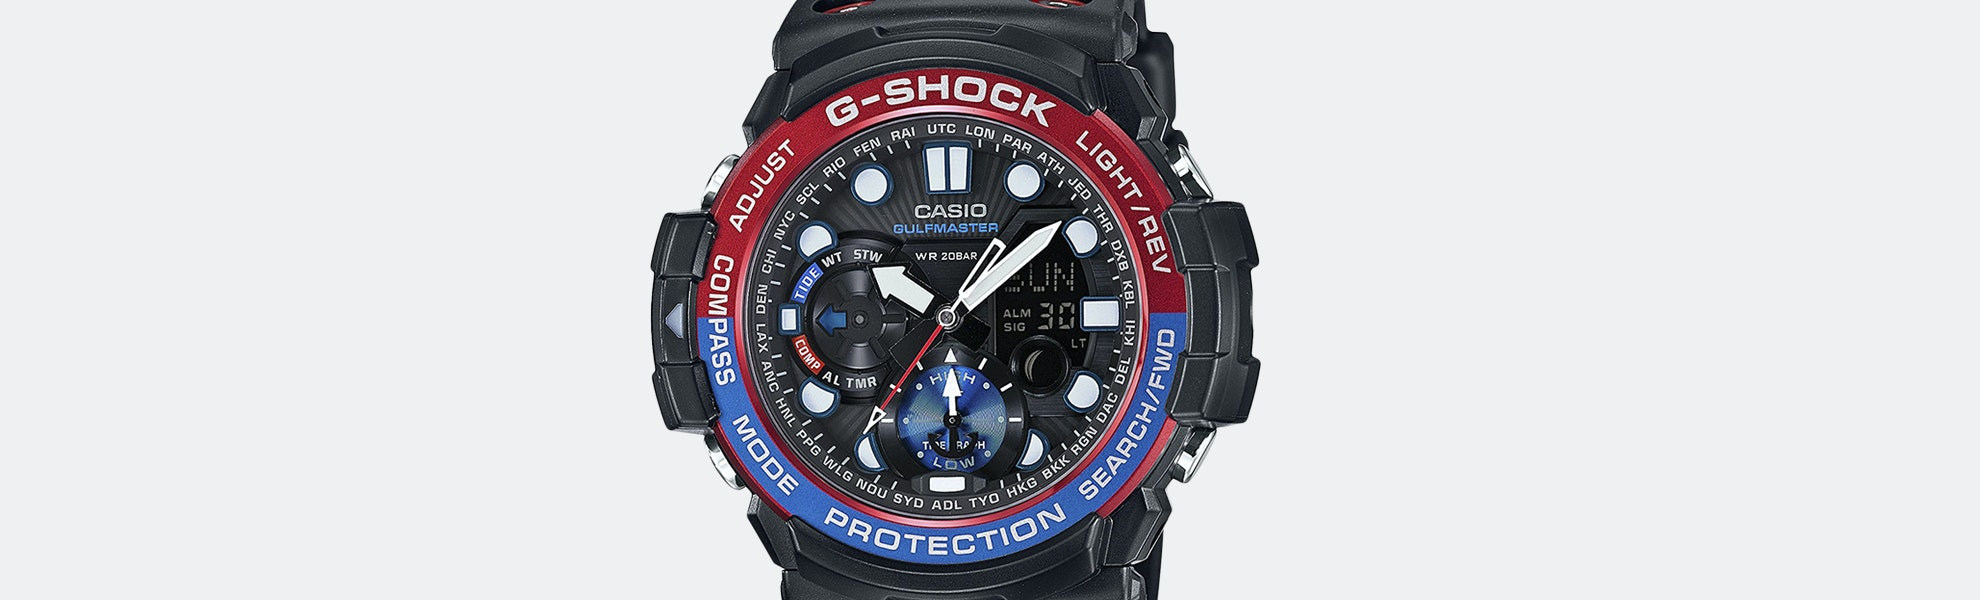 Casio G-Shock Gulfmaster GN-1000 Watch